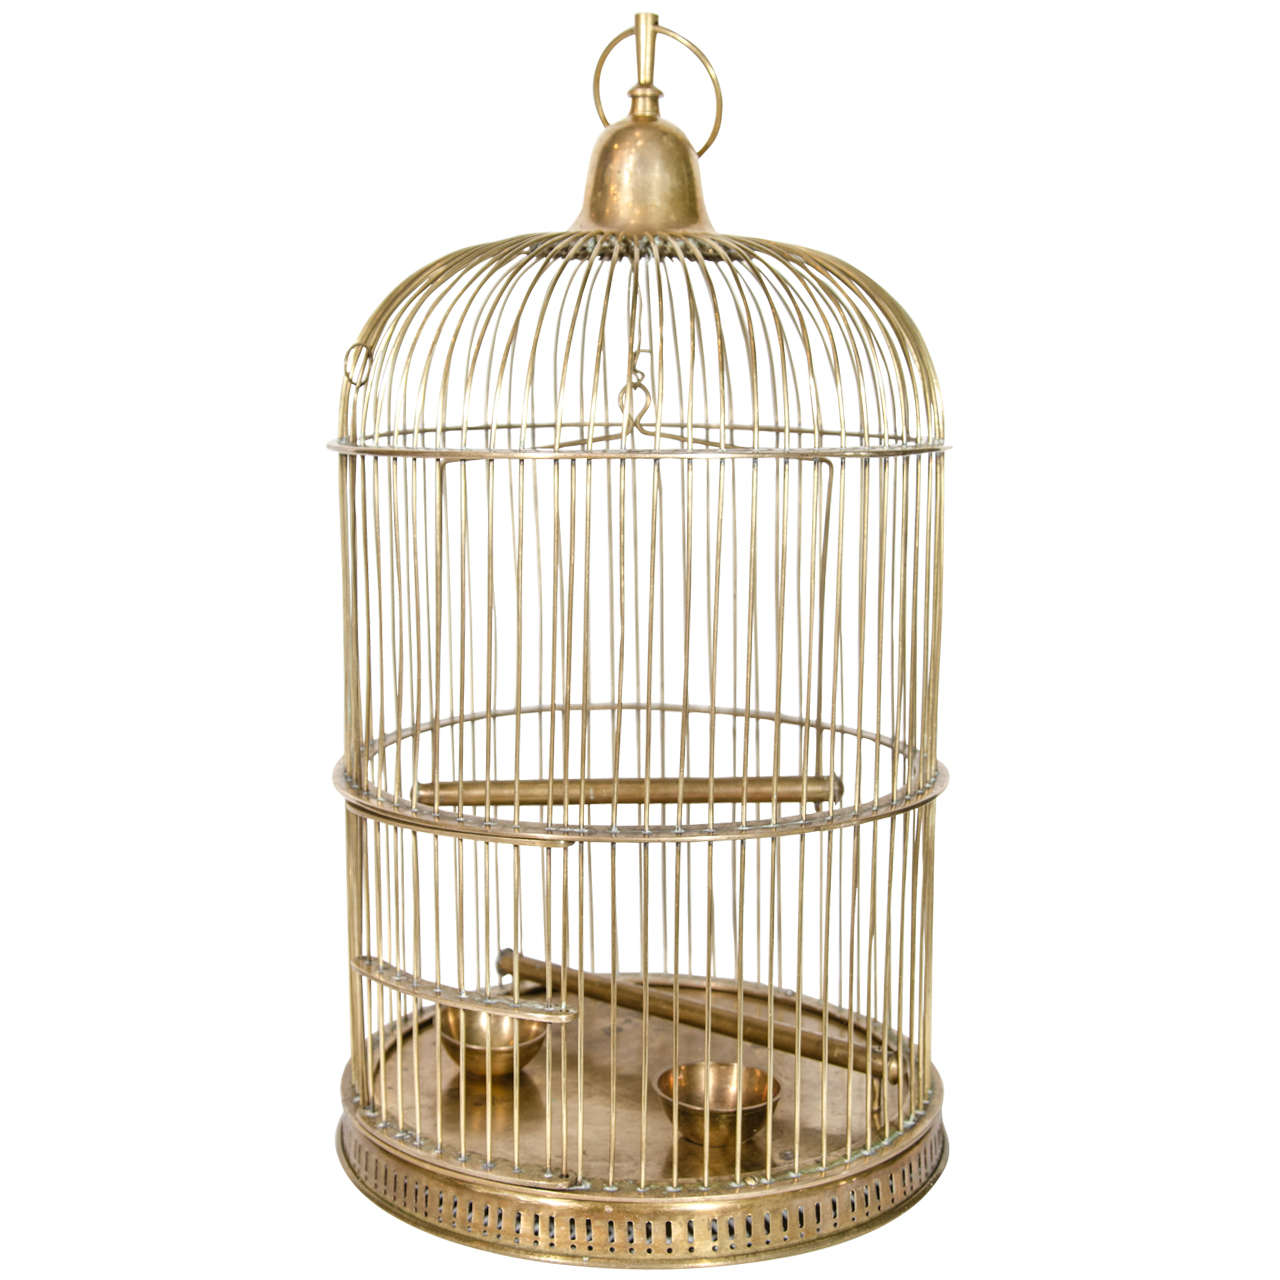 Decorative Bird Cages For Sale Cheap Pictures to pin on Pinterest